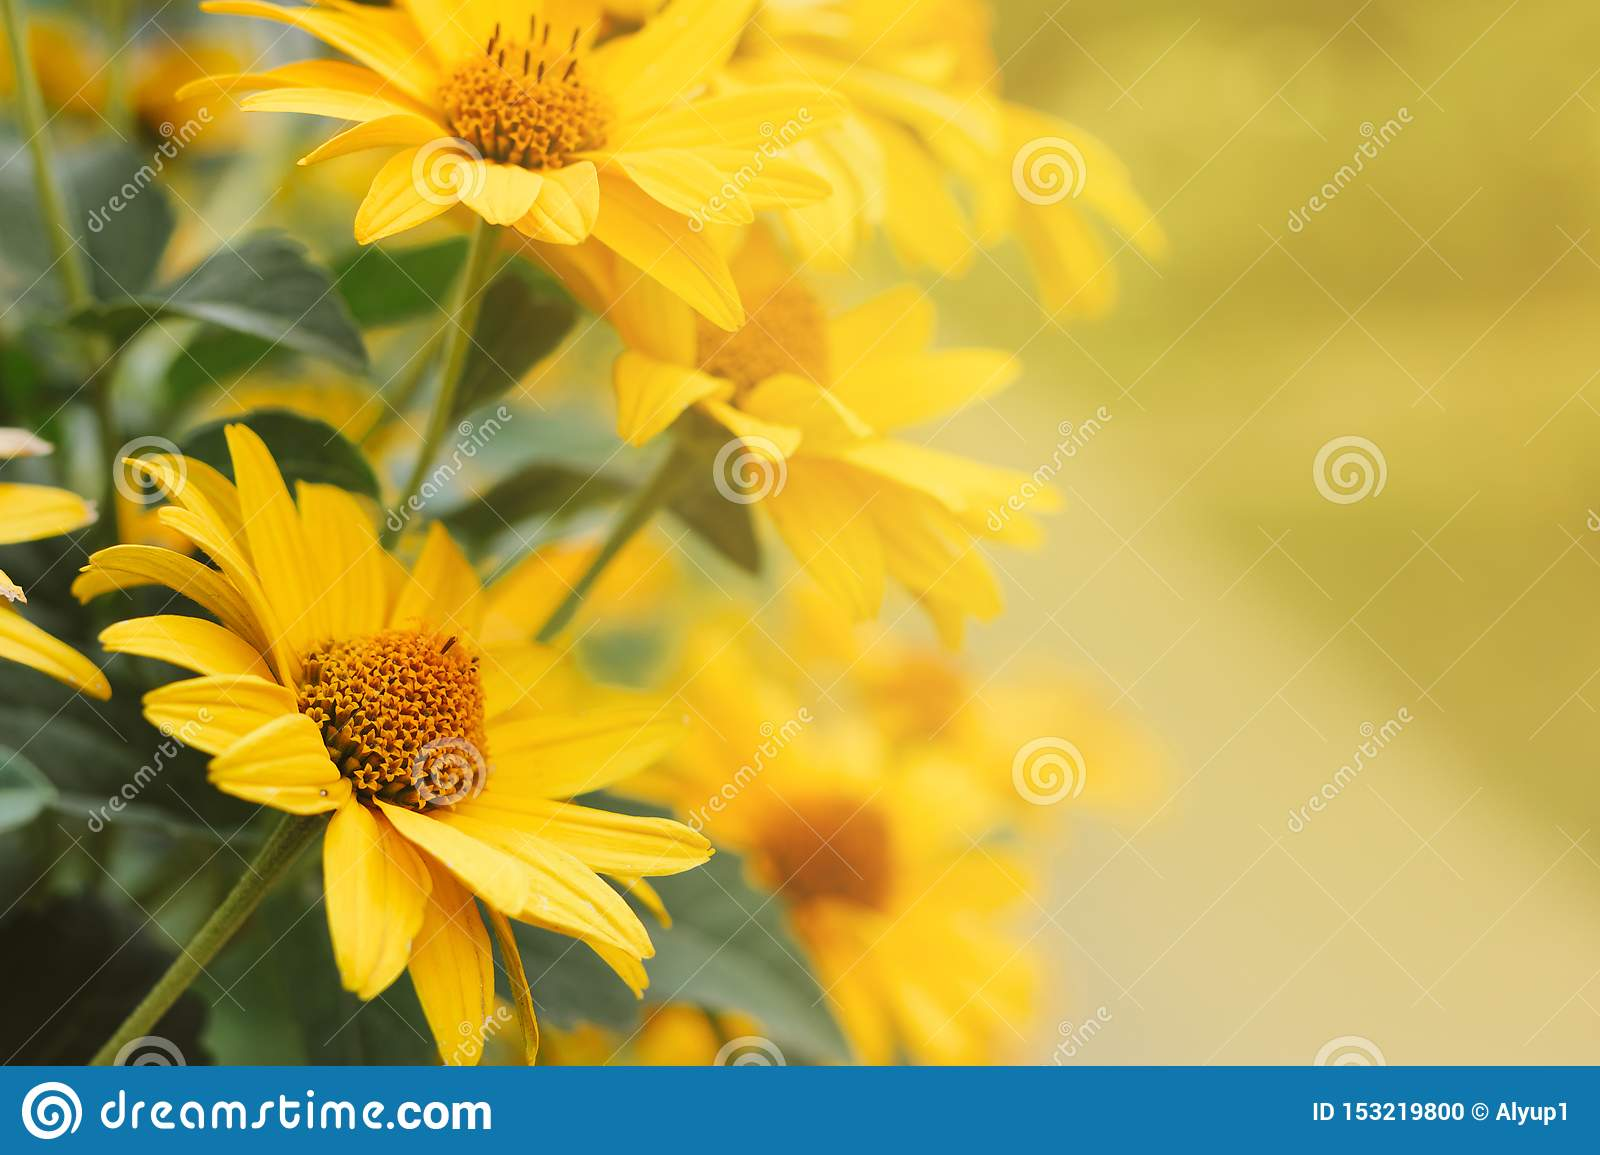 Yellow flowers of Echinacea blurred bokeh background with a blank space for text